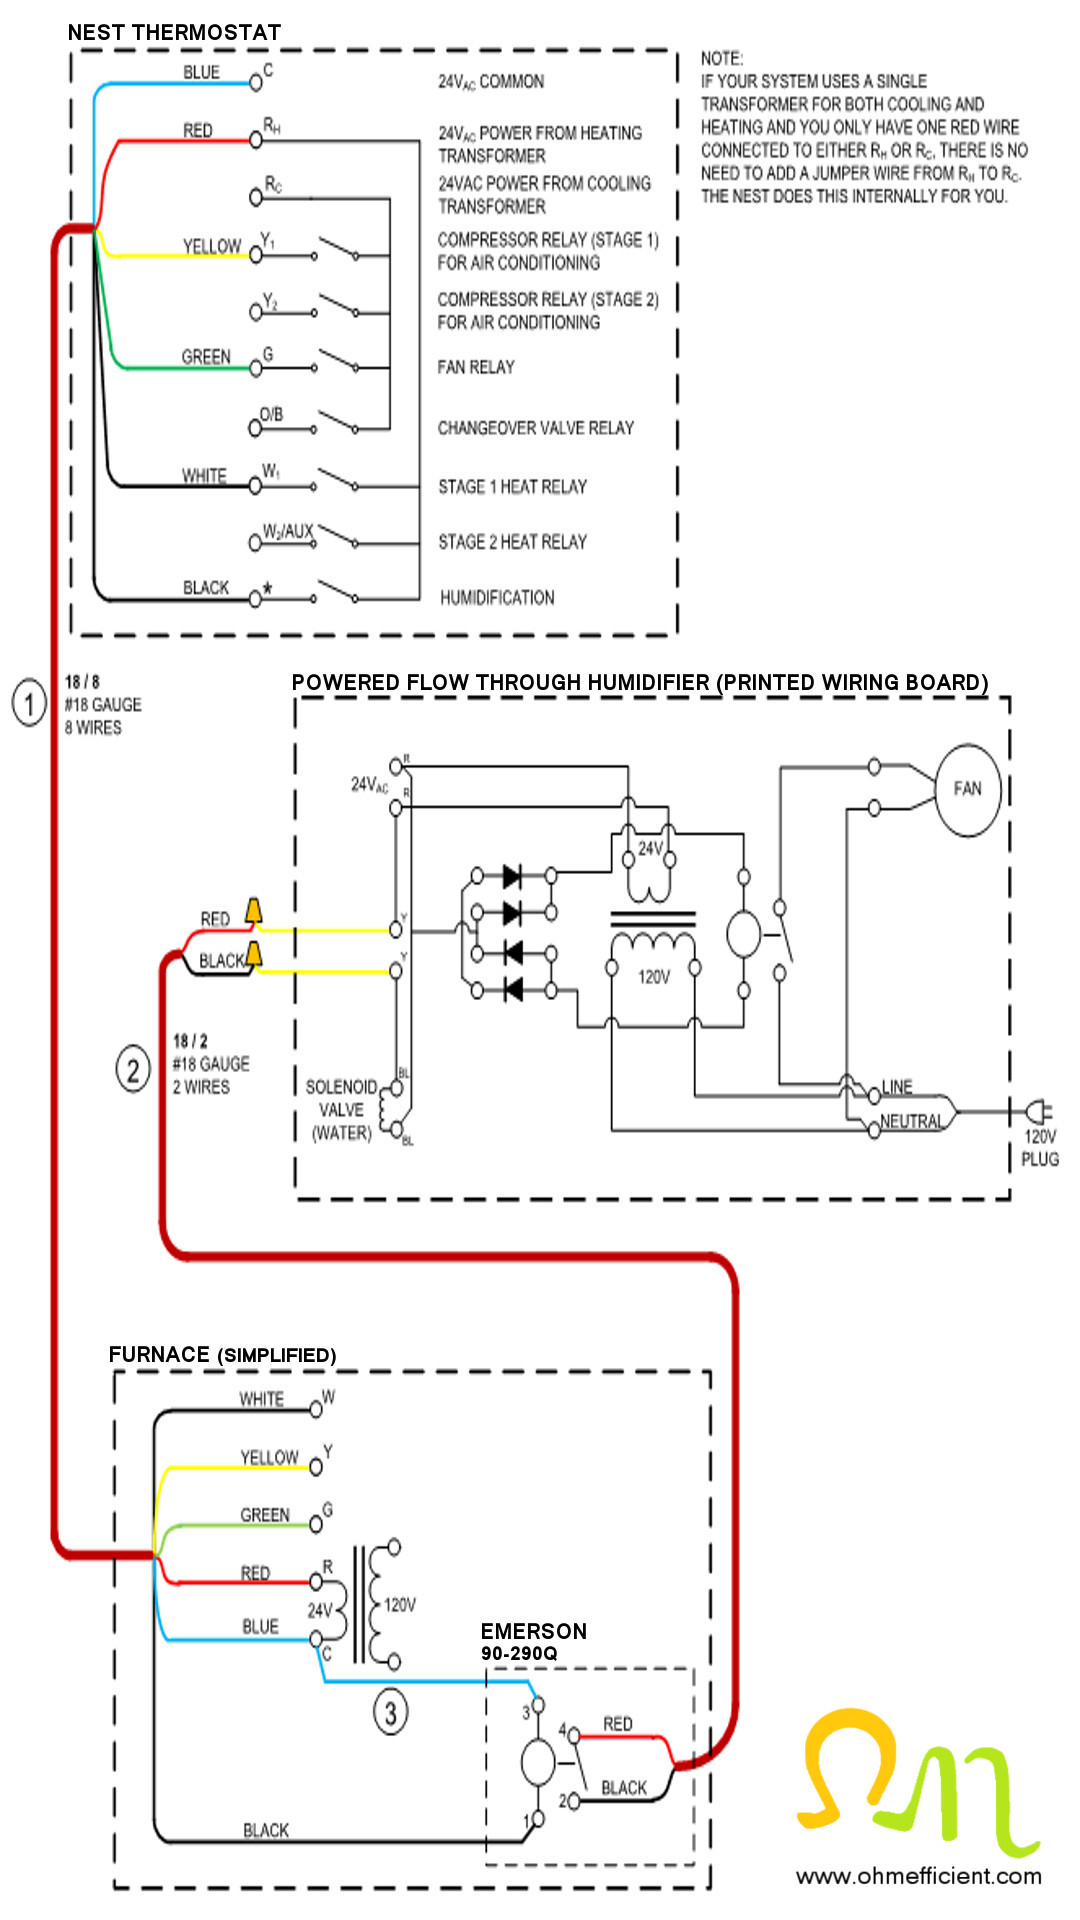 Humidifier Schematics For Wiring - Schema Wiring Diagram - Nest Wiring Diagram Gas